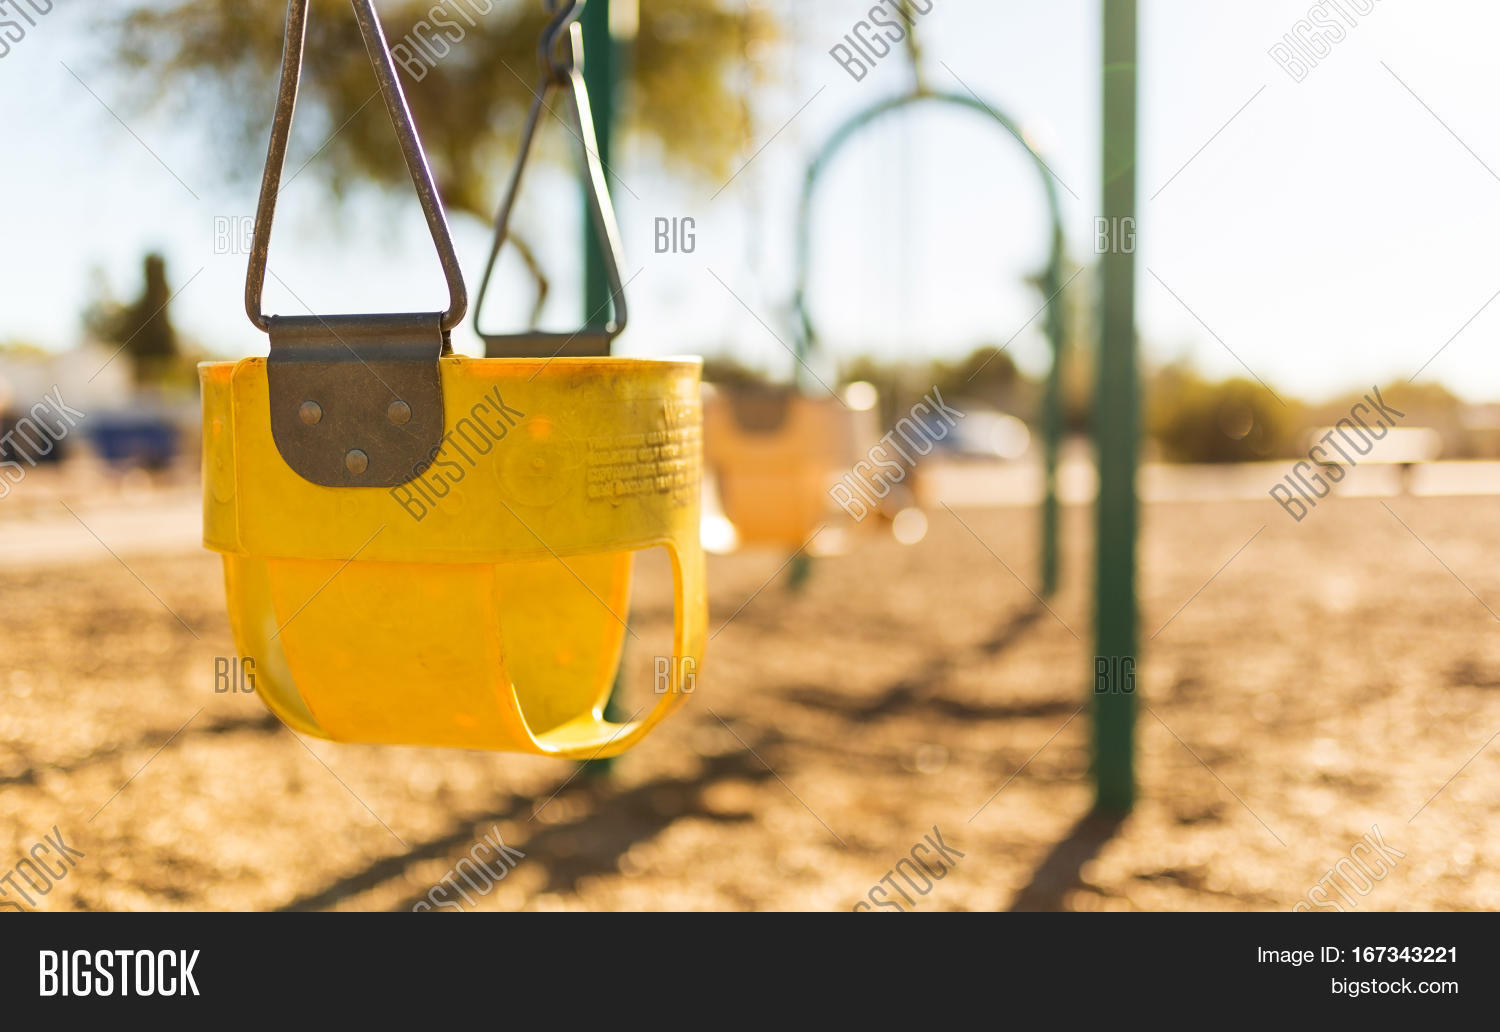 hight resolution of play park toddler swings in a row depth of field view and close up of